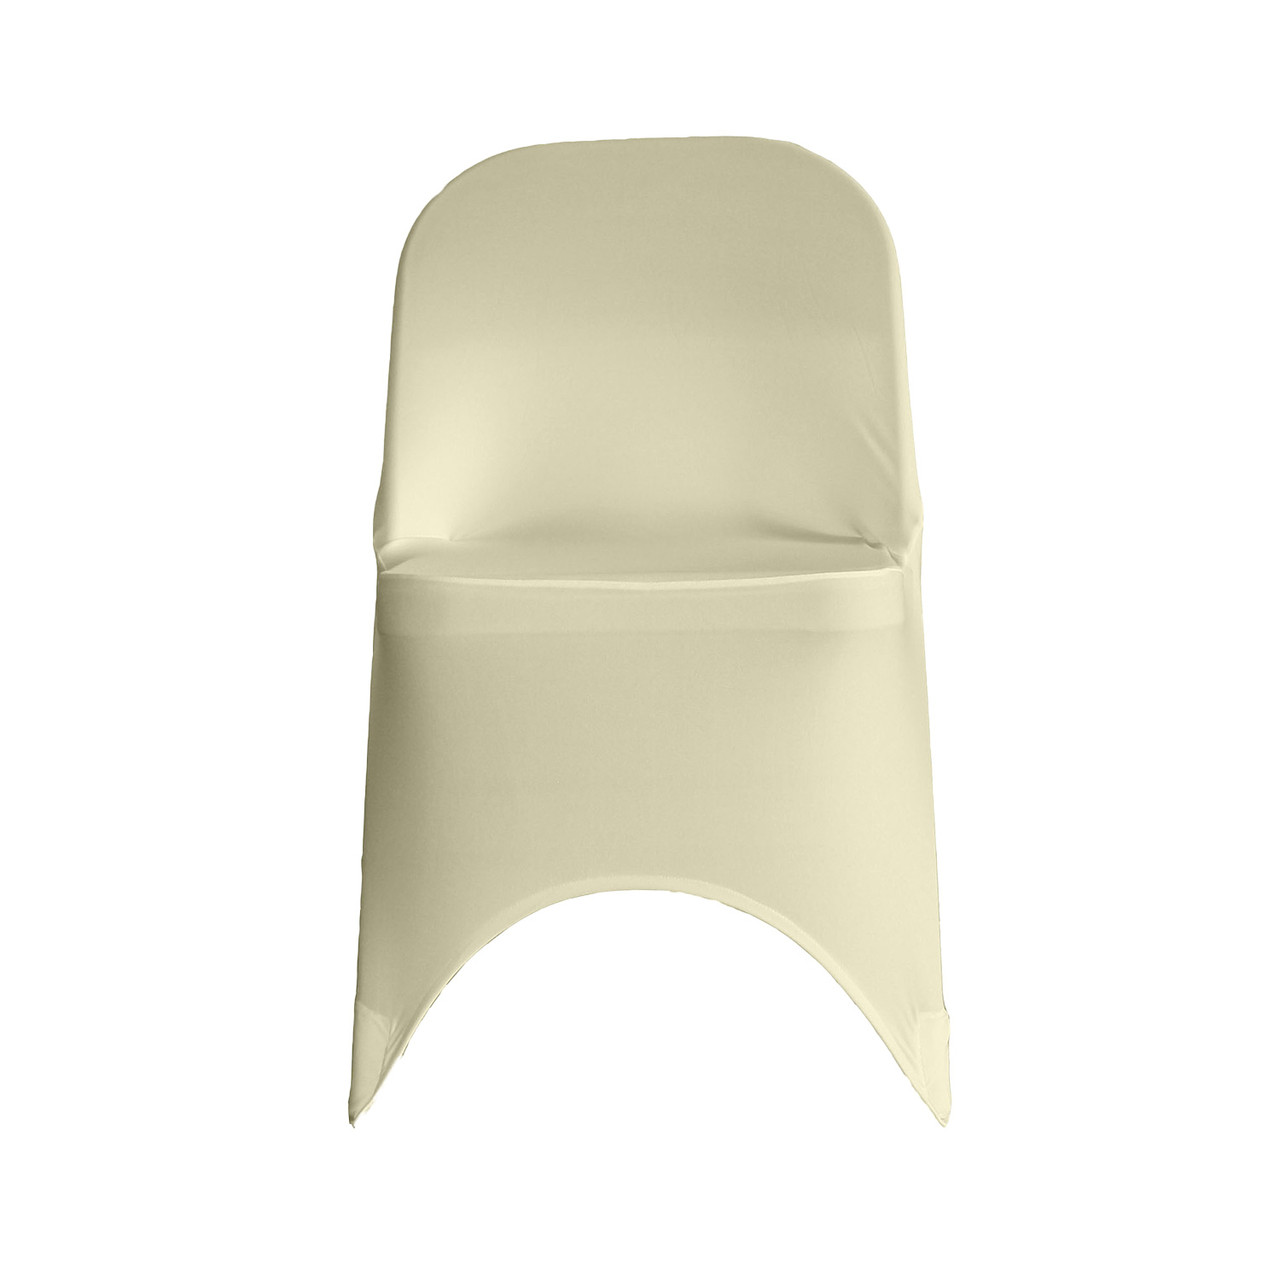 Remarkable Stretch Spandex Folding Chair Cover Ivory Gmtry Best Dining Table And Chair Ideas Images Gmtryco